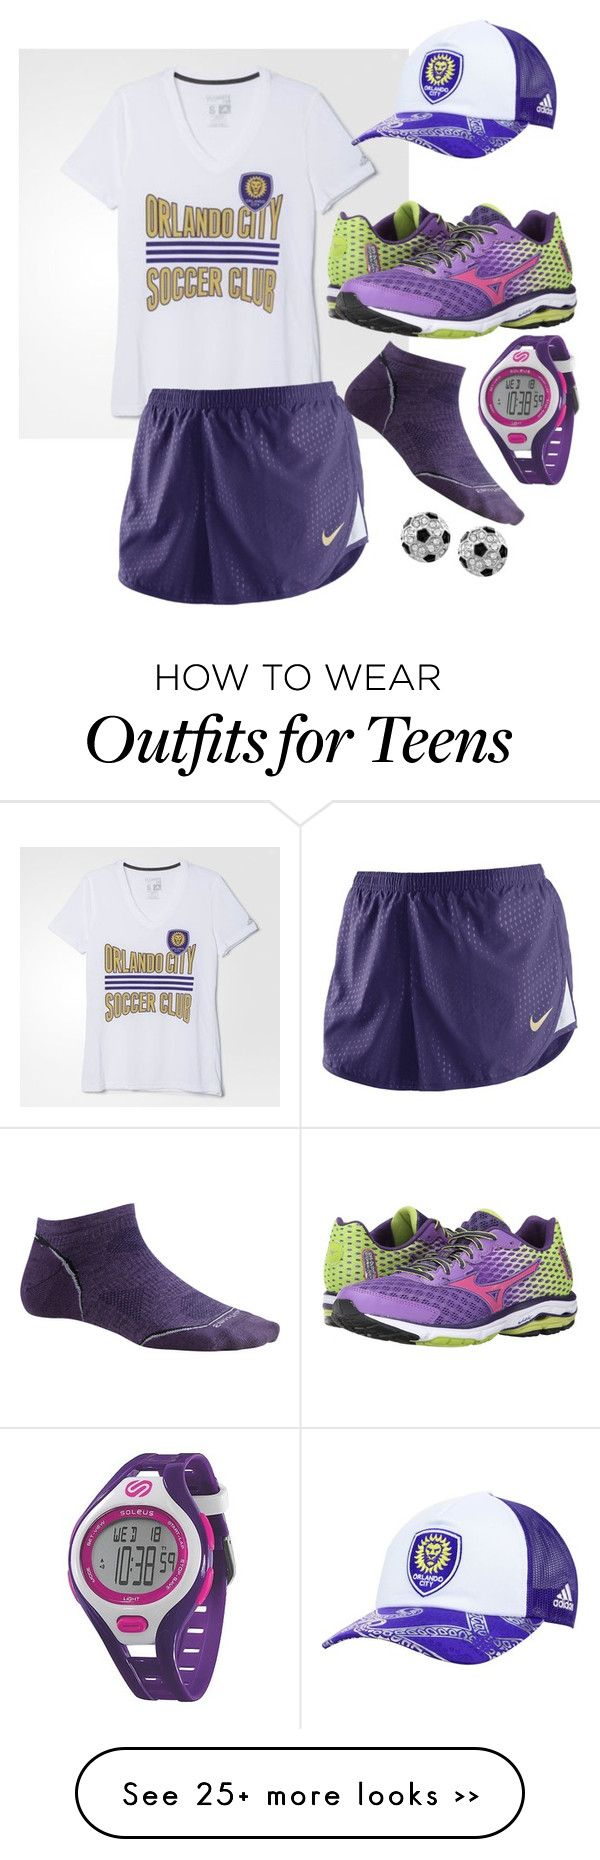 """Orlando city soccer fan"" by kimg-phd on Polyvore"